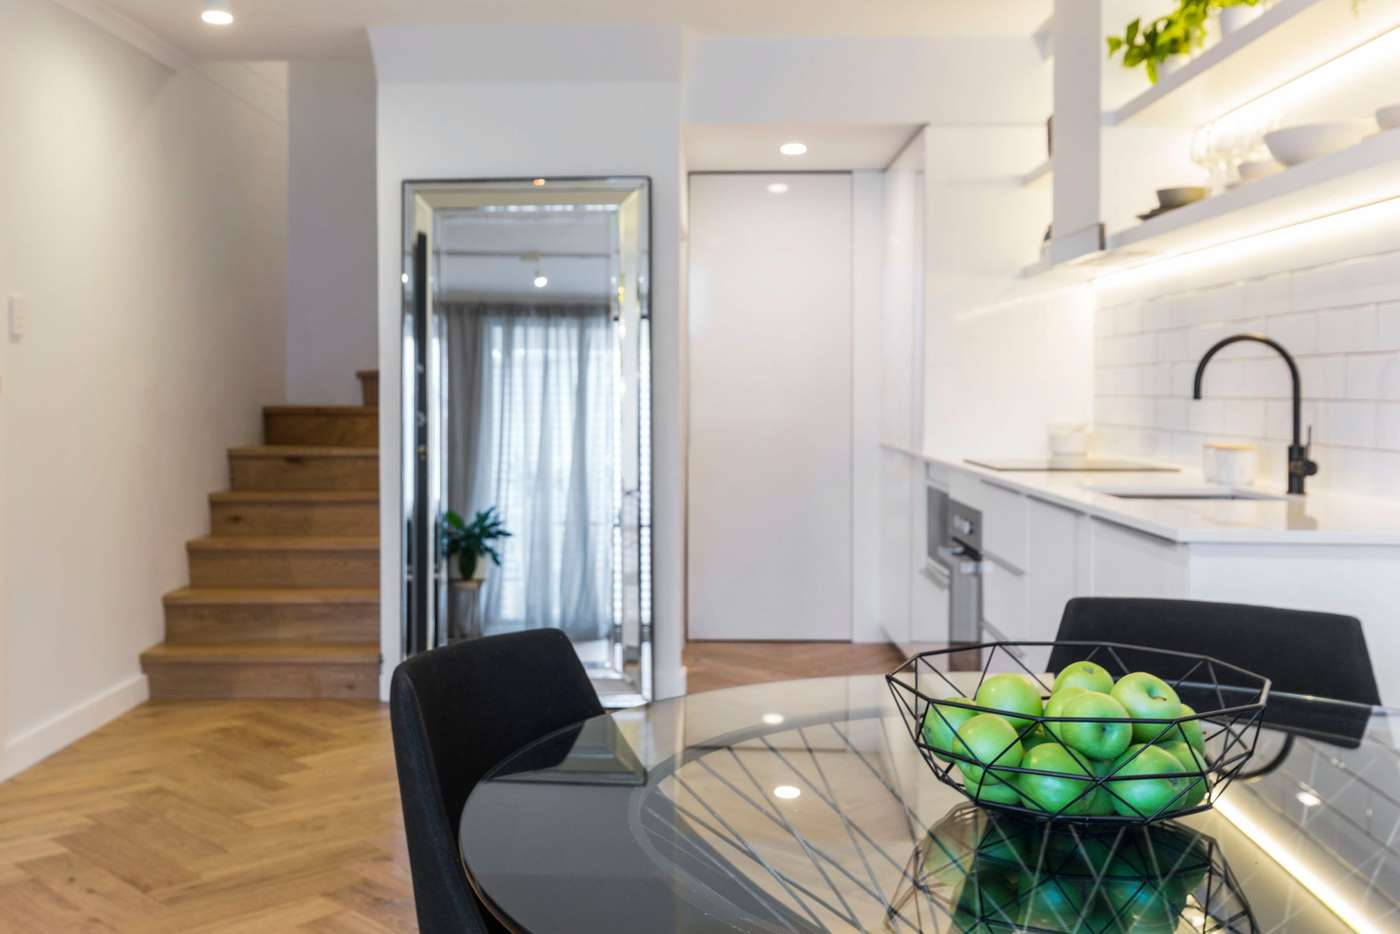 Fifth view of Homely apartment listing, 24/2 Goodlet Street, Surry Hills NSW 2010